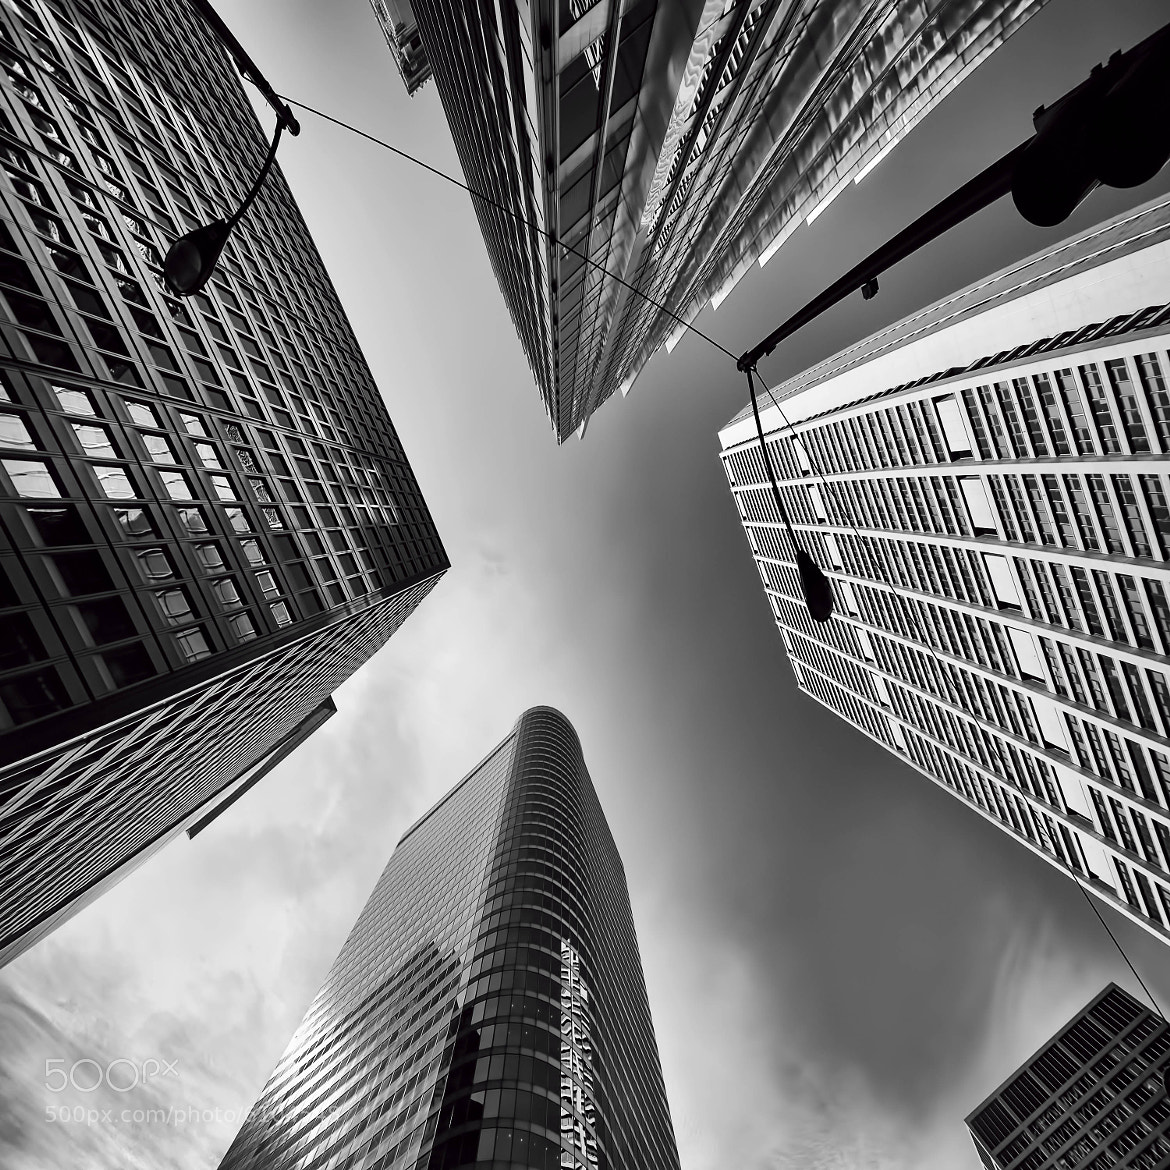 Photograph Looking Up by Elena Kovalevich on 500px